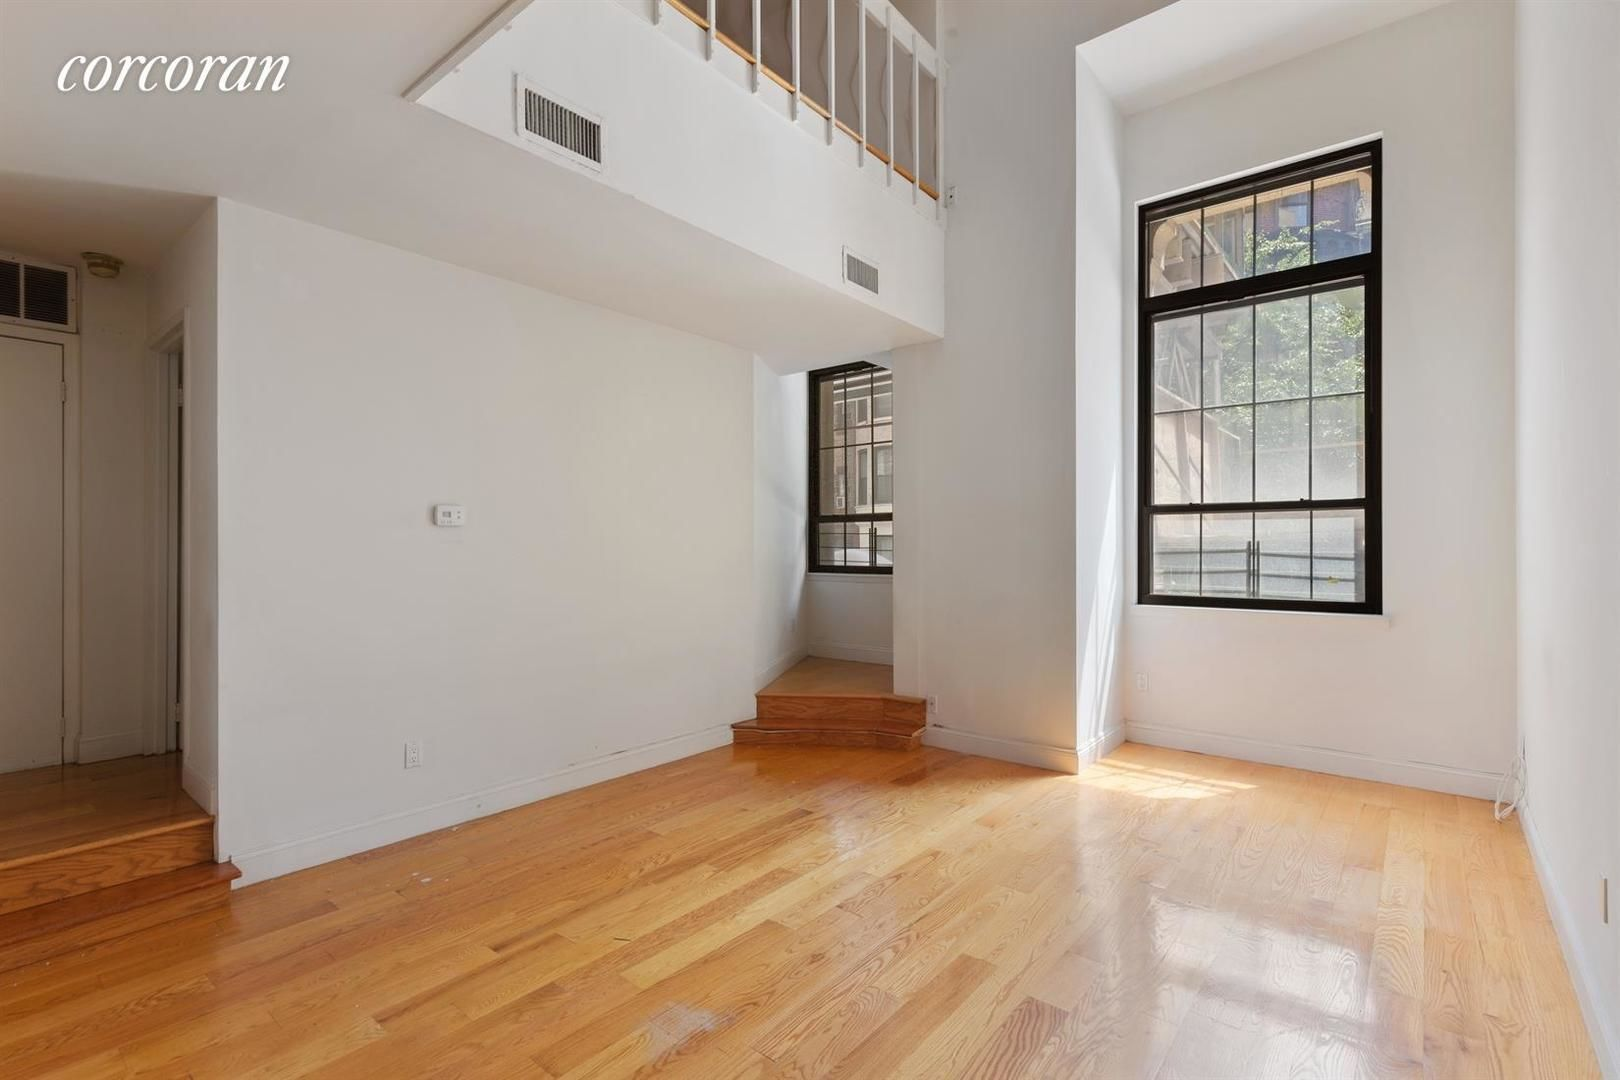 Apartment for sale at 253 West 73rd Street, Apt 2C